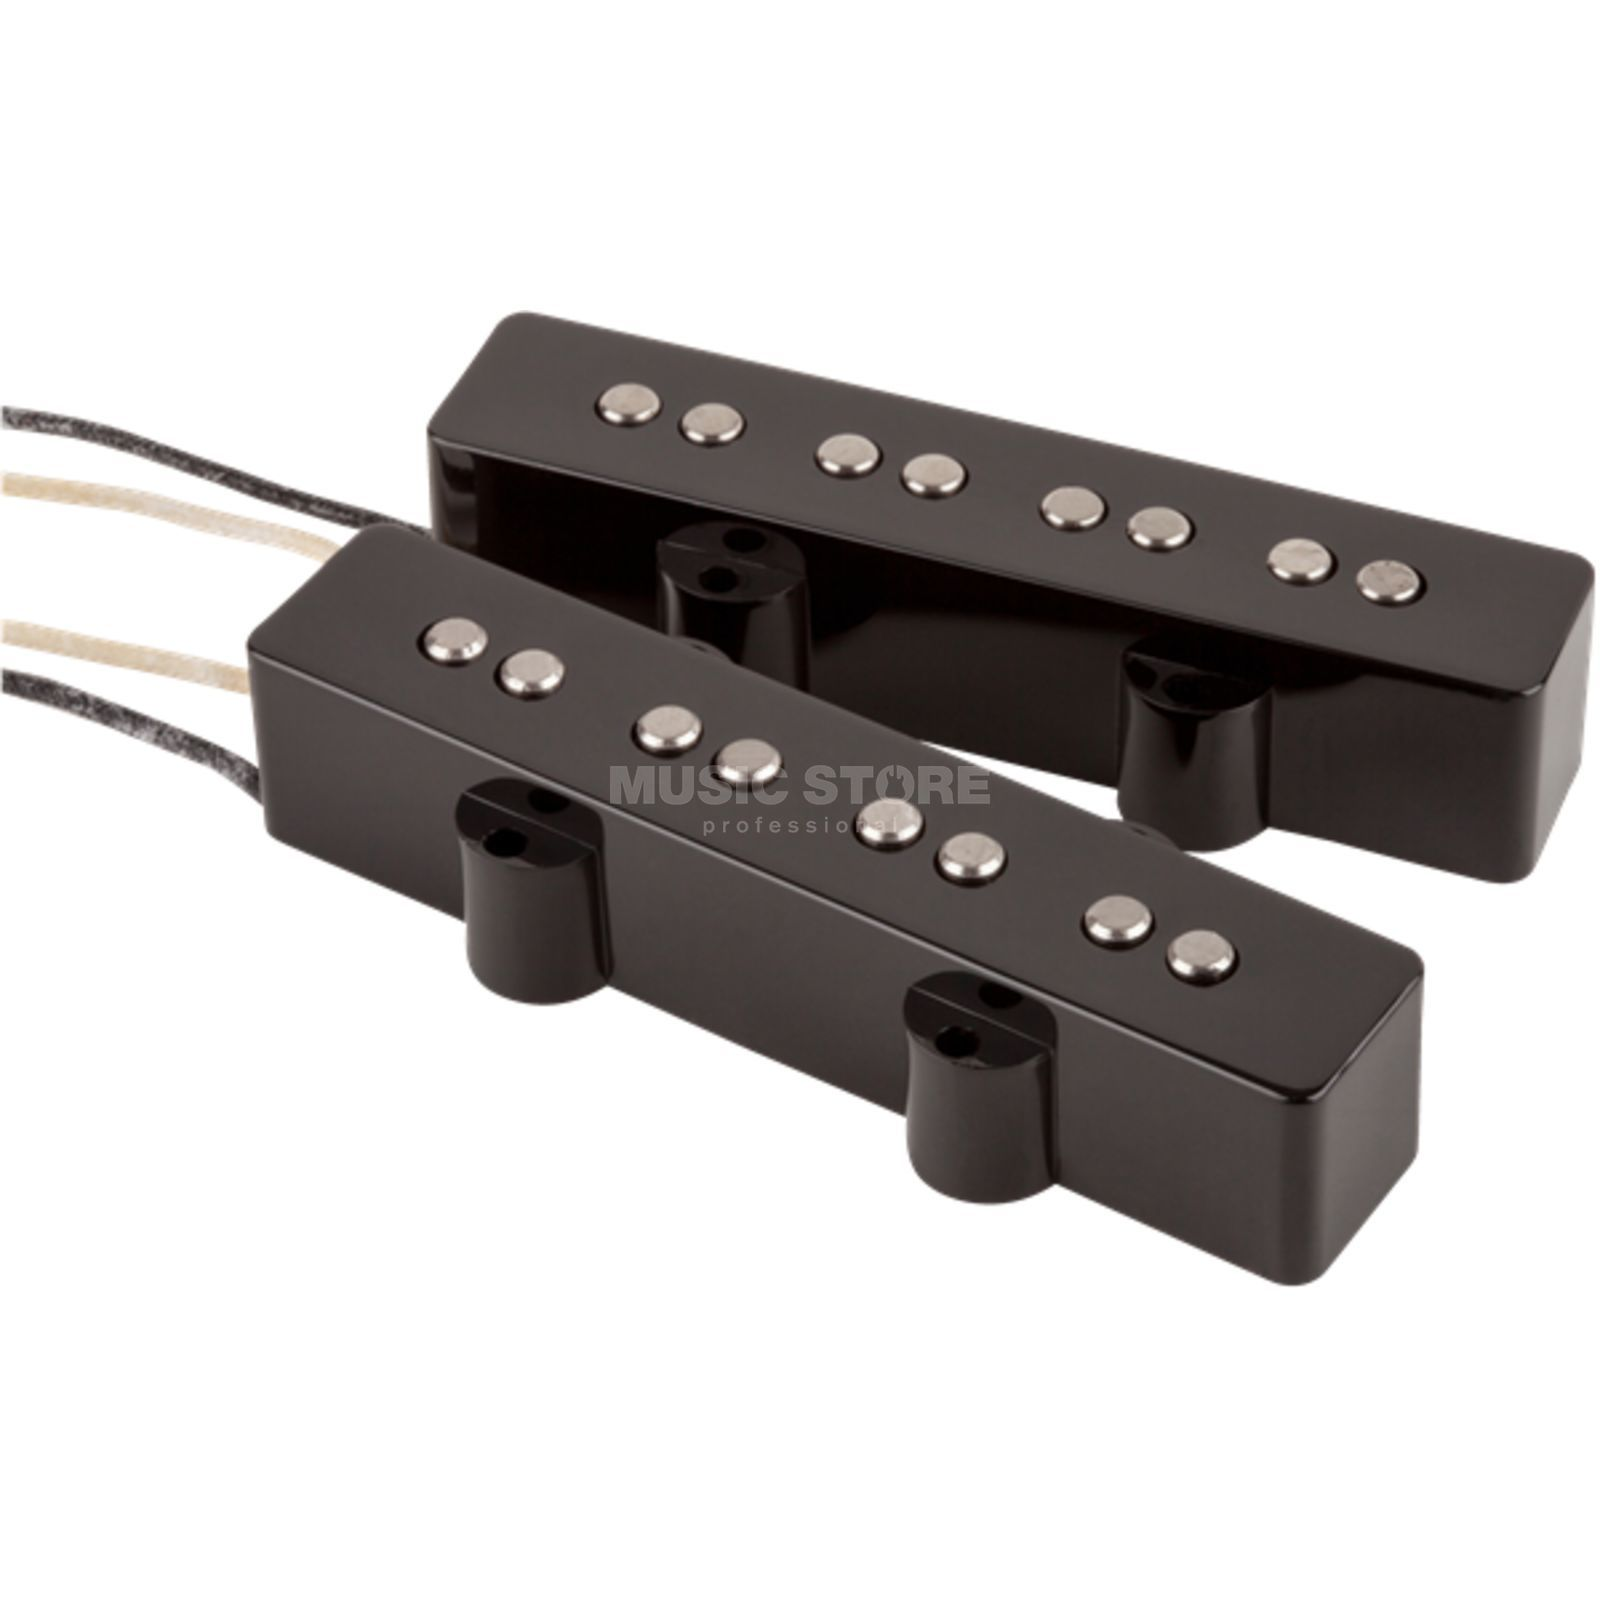 Fender Original Jazz Bass Pickups Produktbild